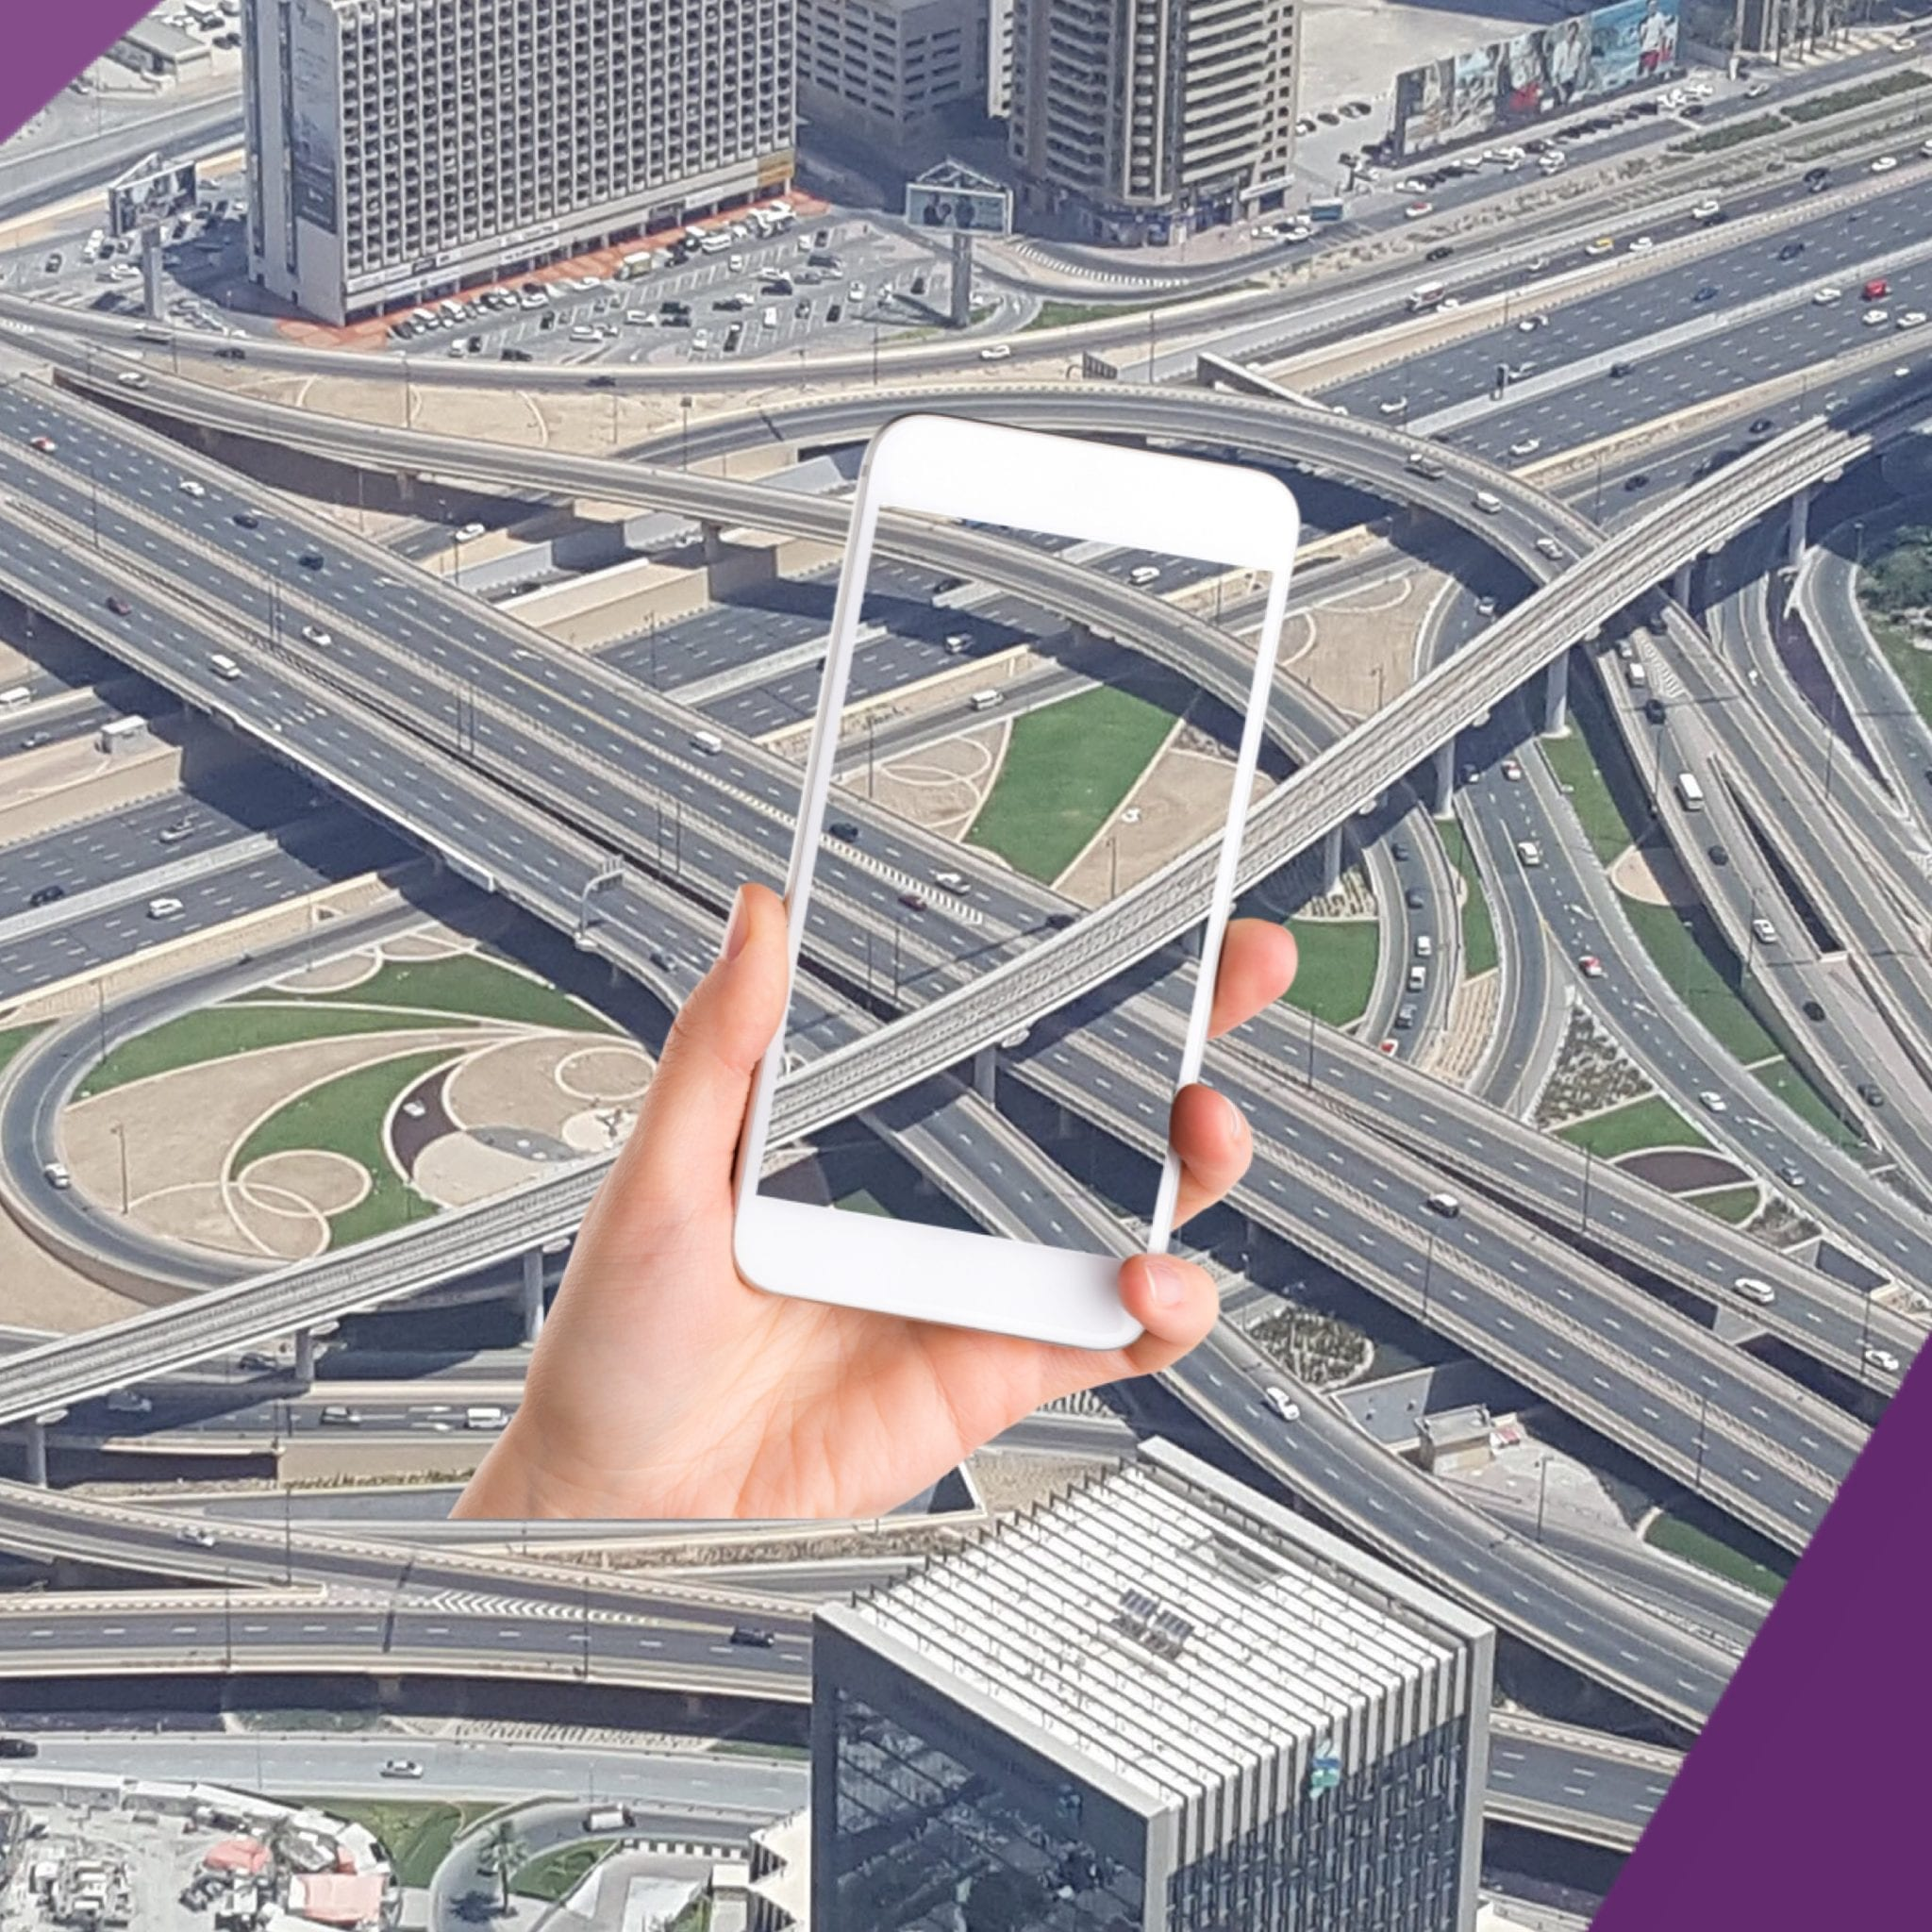 There is an app that helps you get around Dubai!